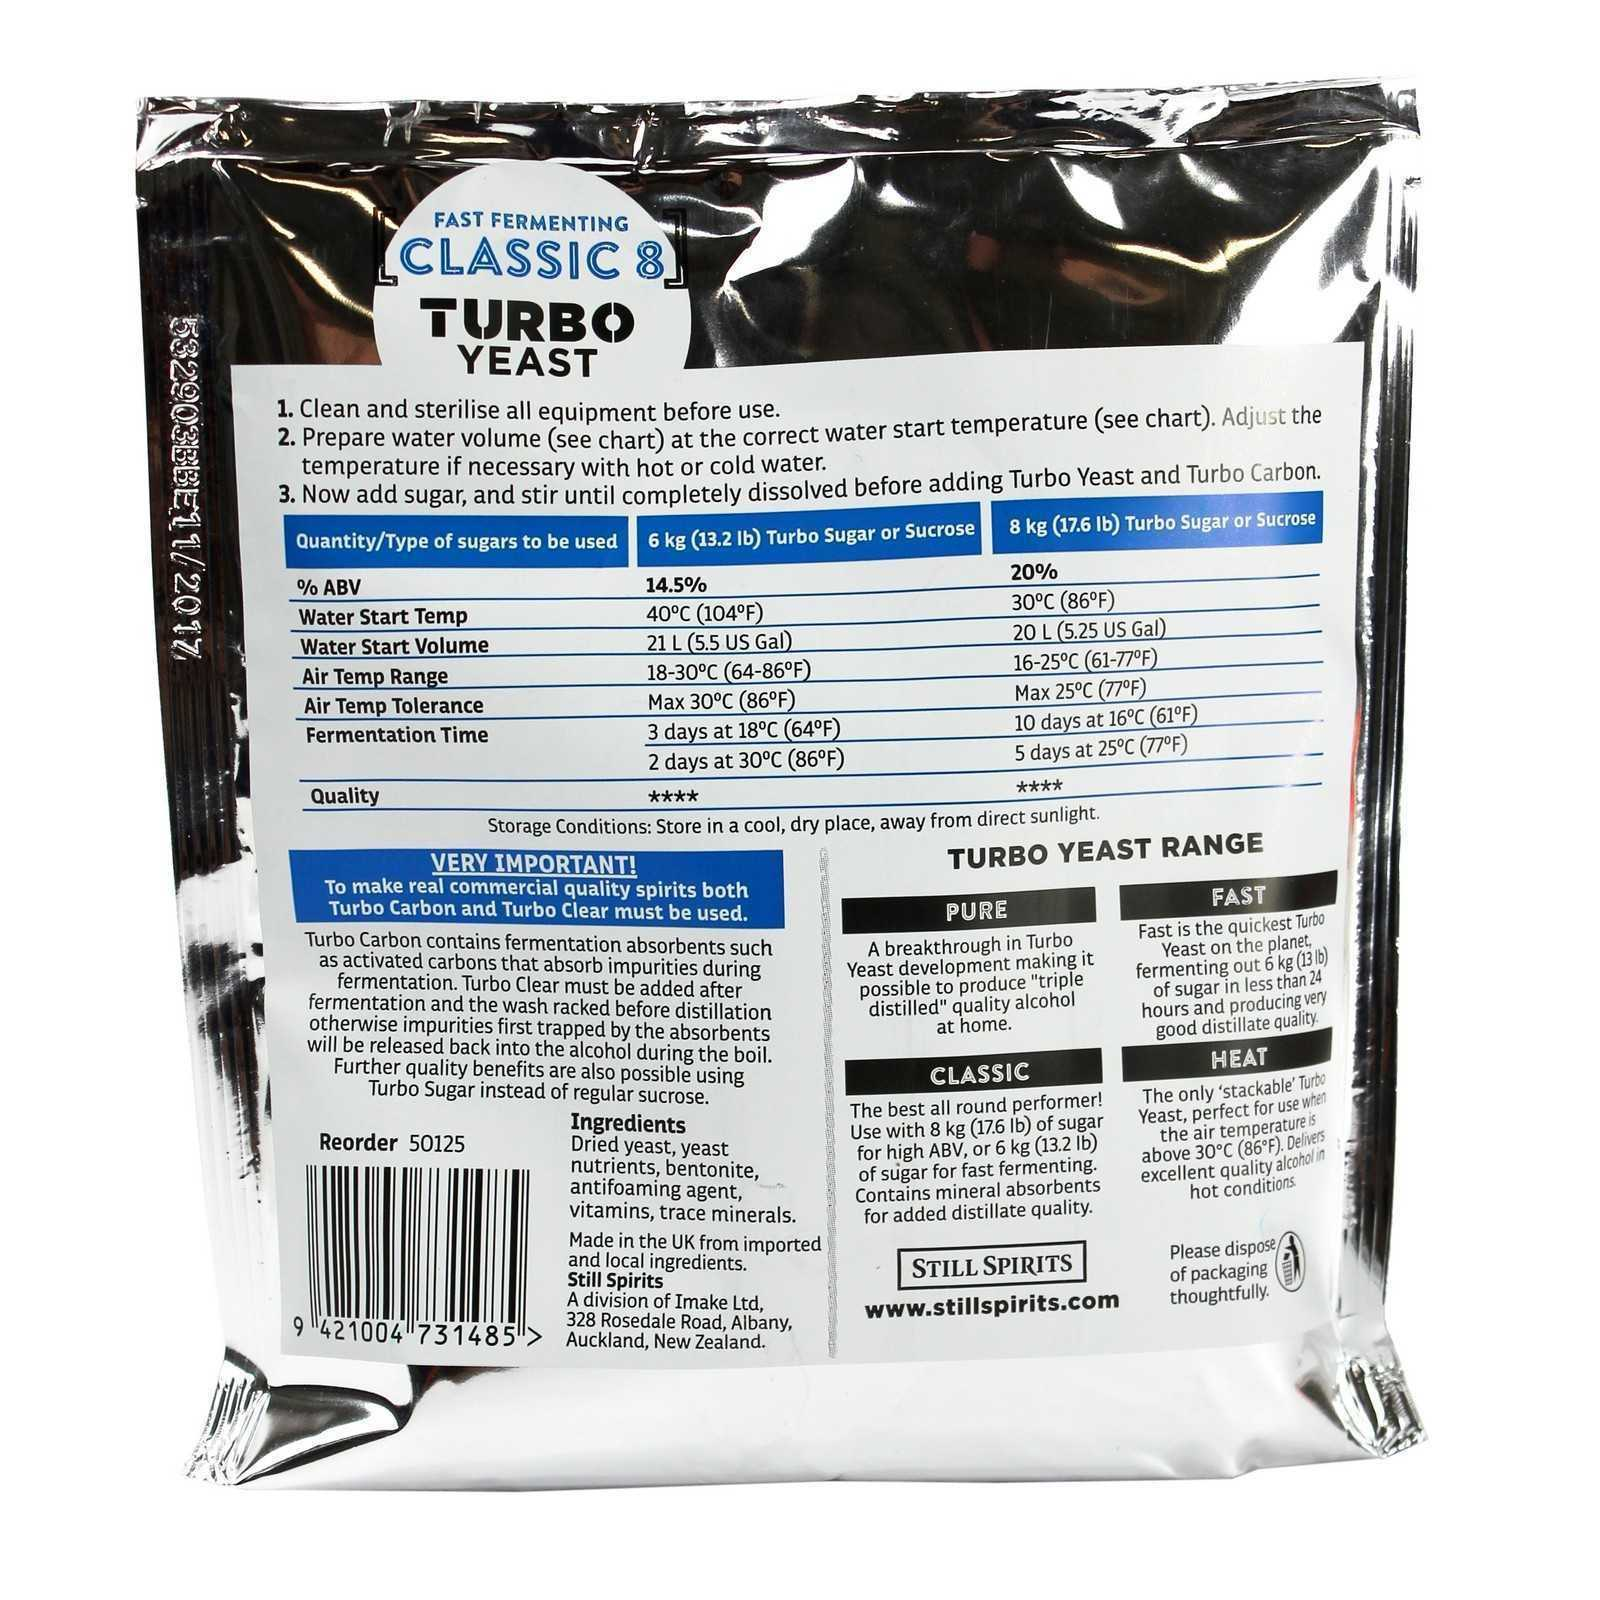 how to use classic 8 turbo yeast